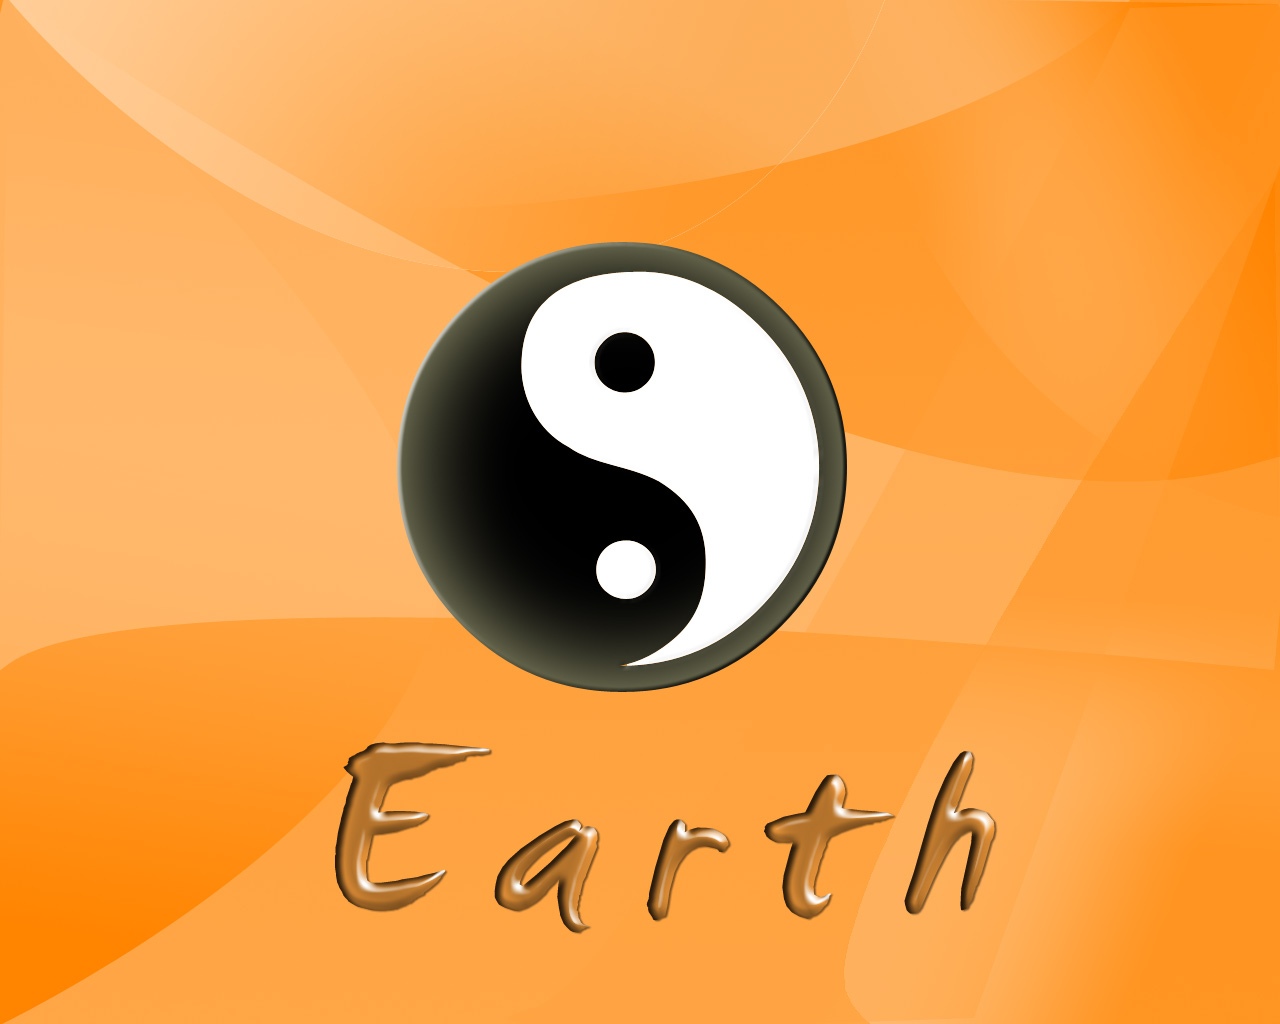 Earth feng shui wallpapers Feng Shui Doctrine articles and e books 1280x1024